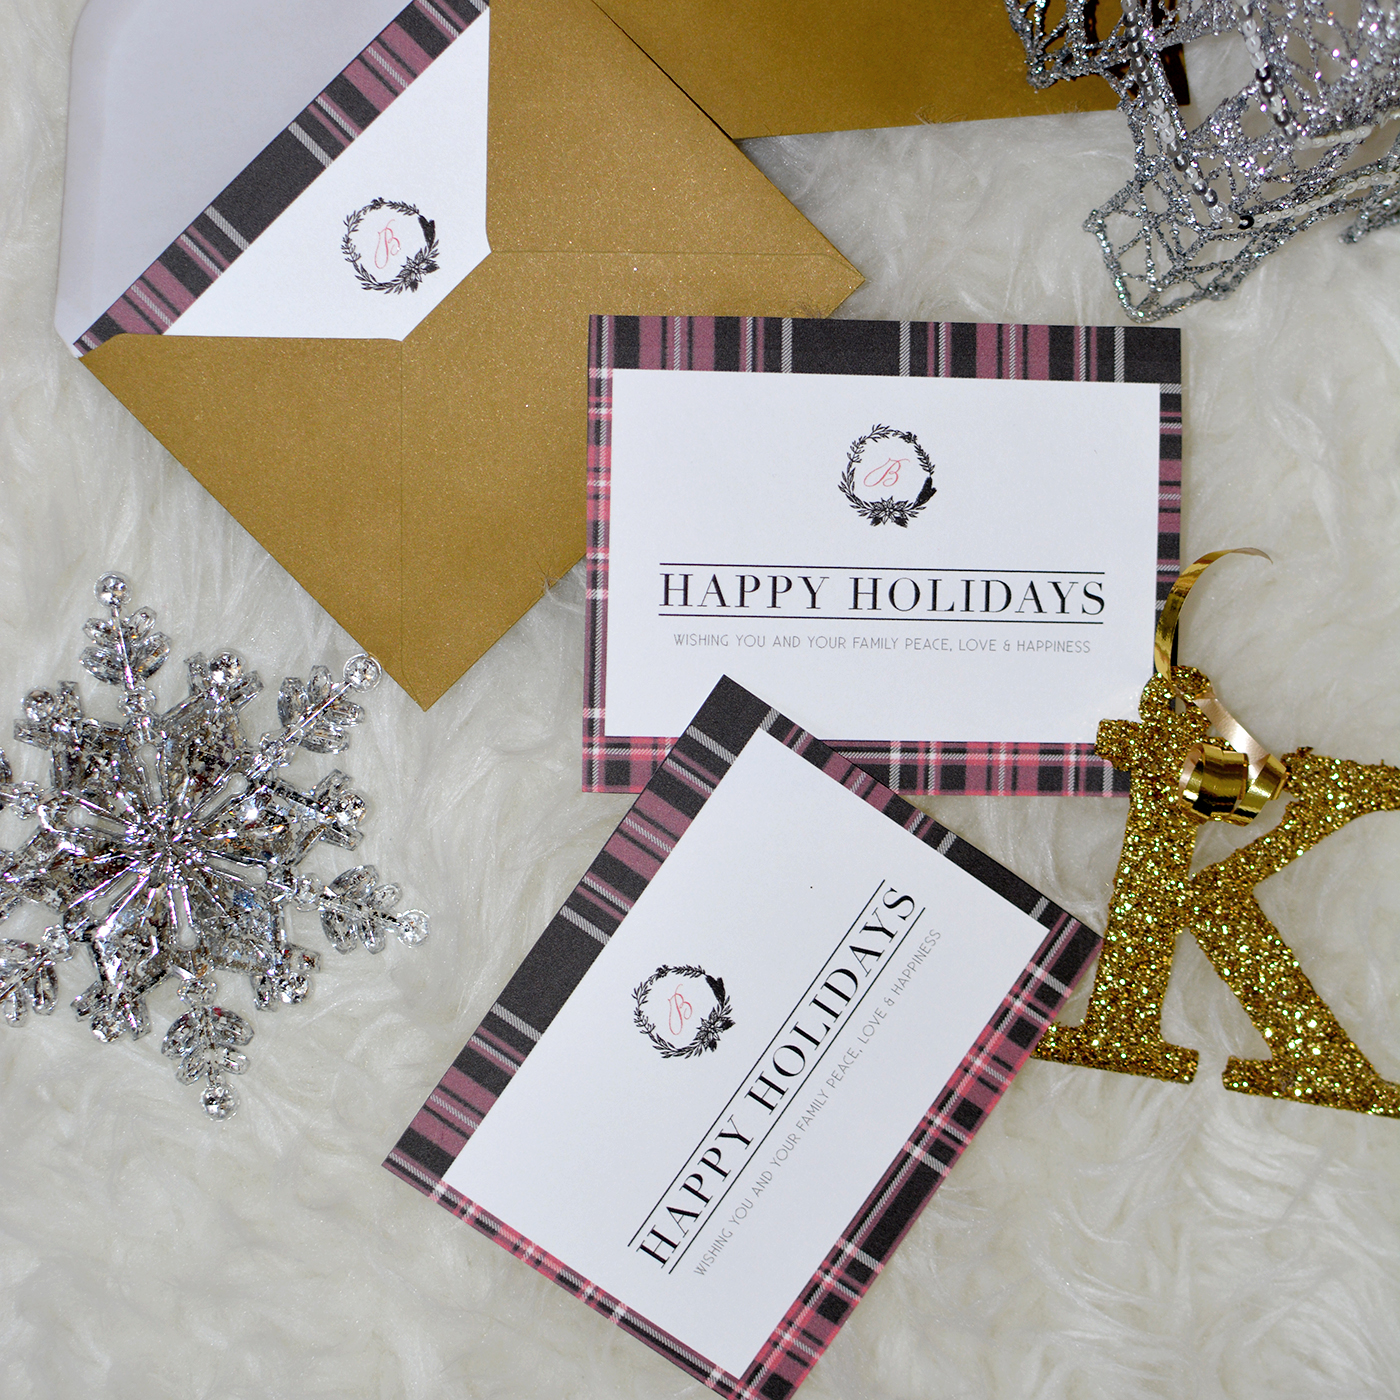 My DIY Plaid Holiday Cards